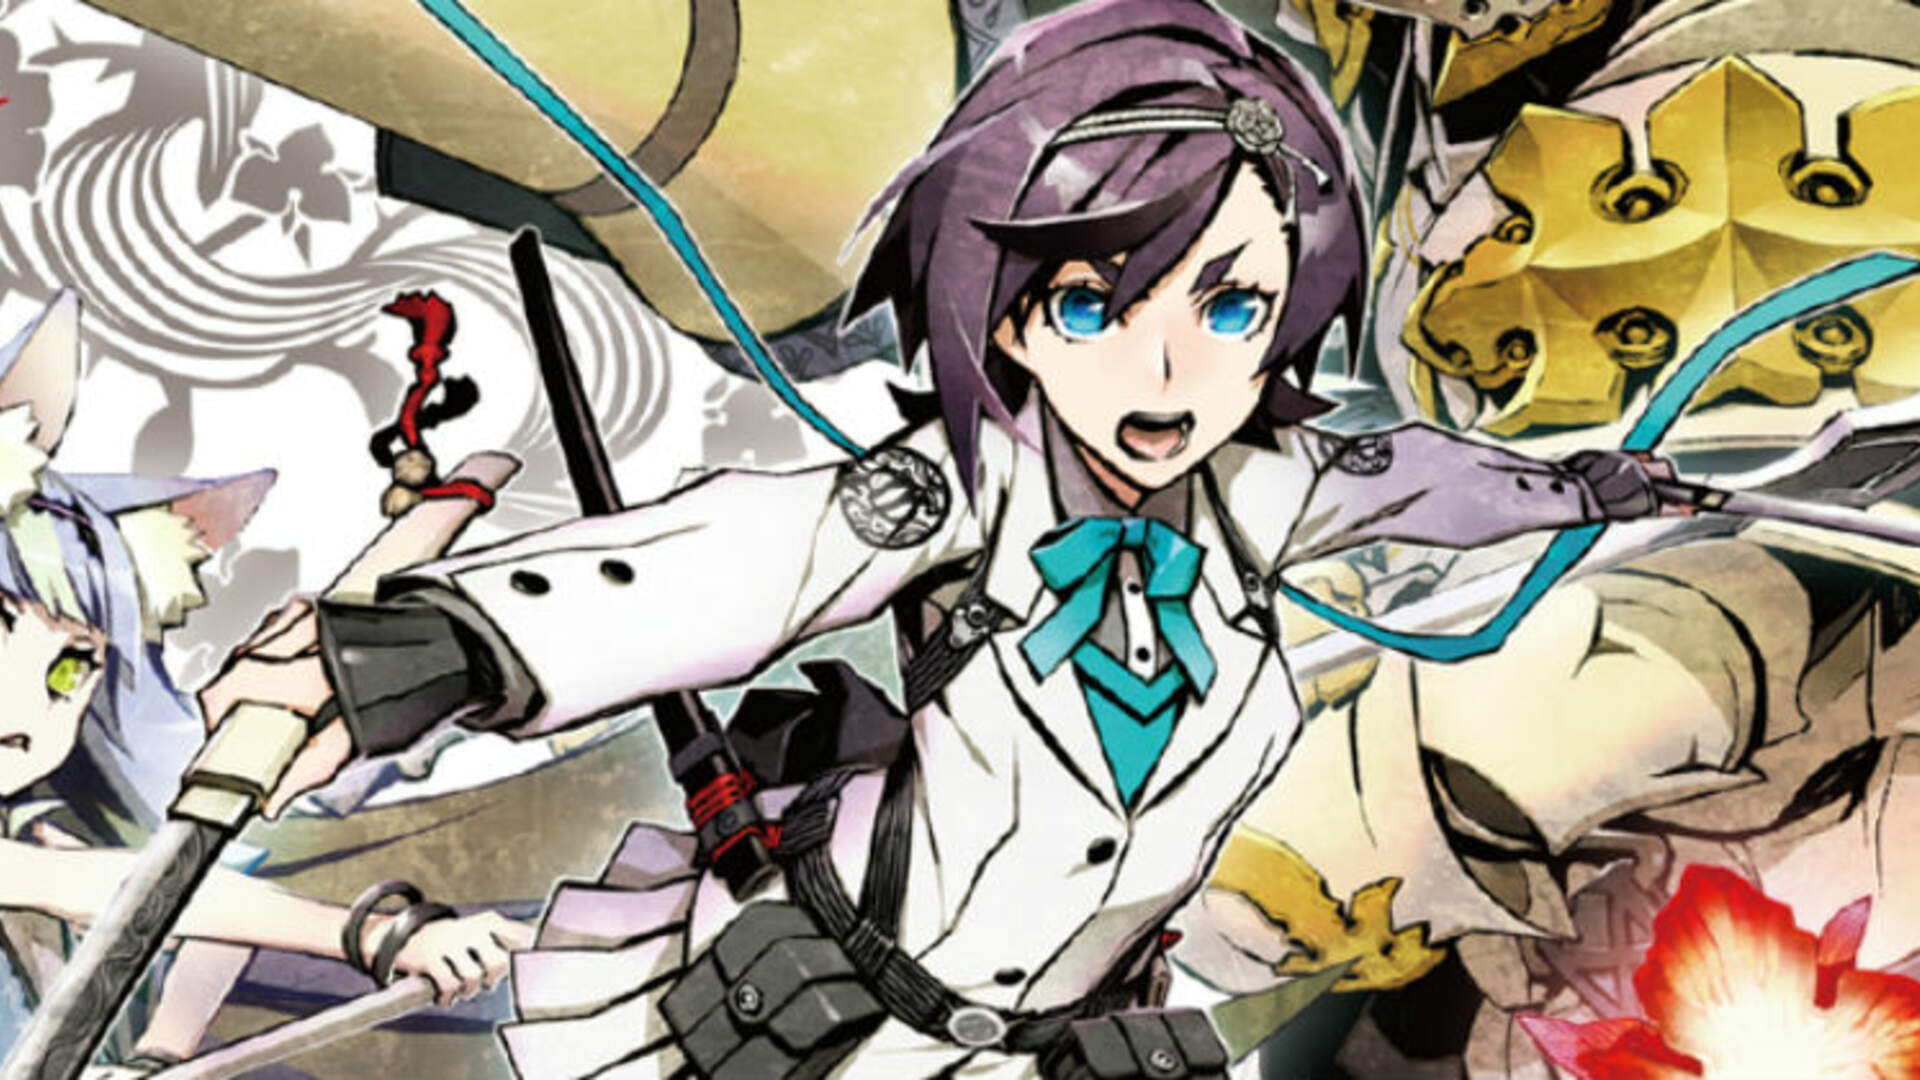 7th Dragon III Code: VFD's Official Localization is Great News for JRPG Fans